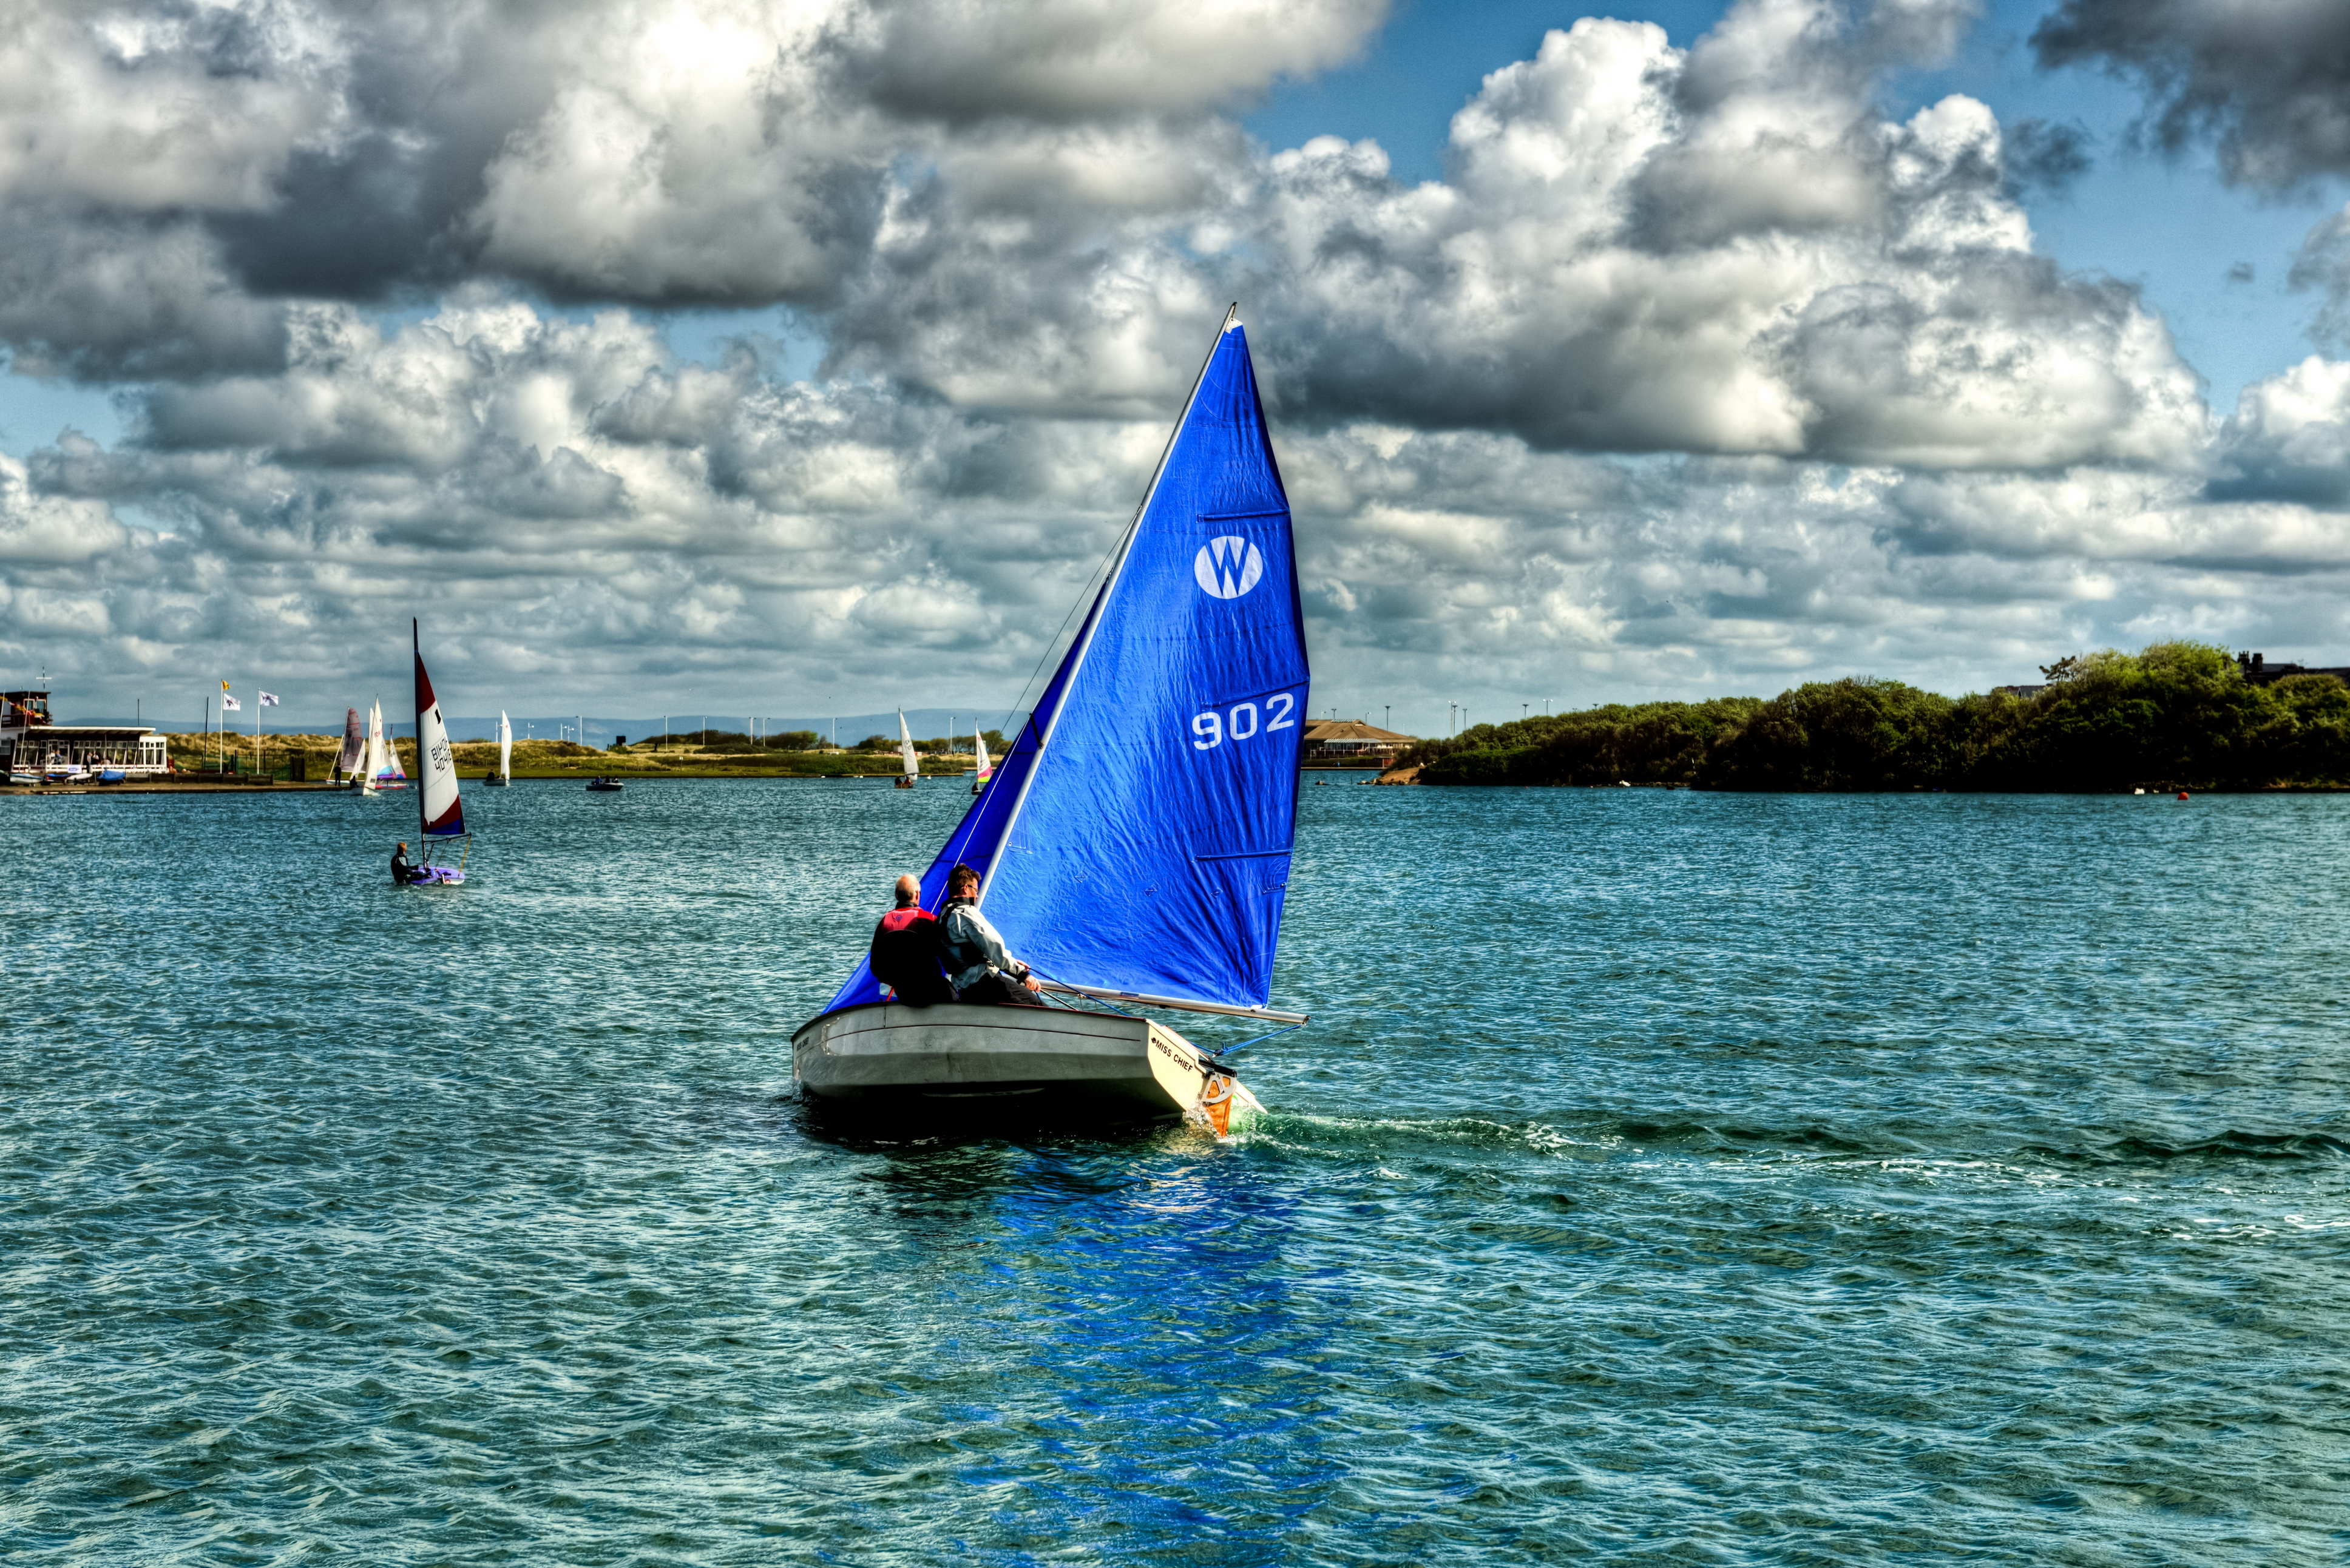 120010 download wallpaper Sports, Ships, Sailboats, England, Sky, Lake screensavers and pictures for free